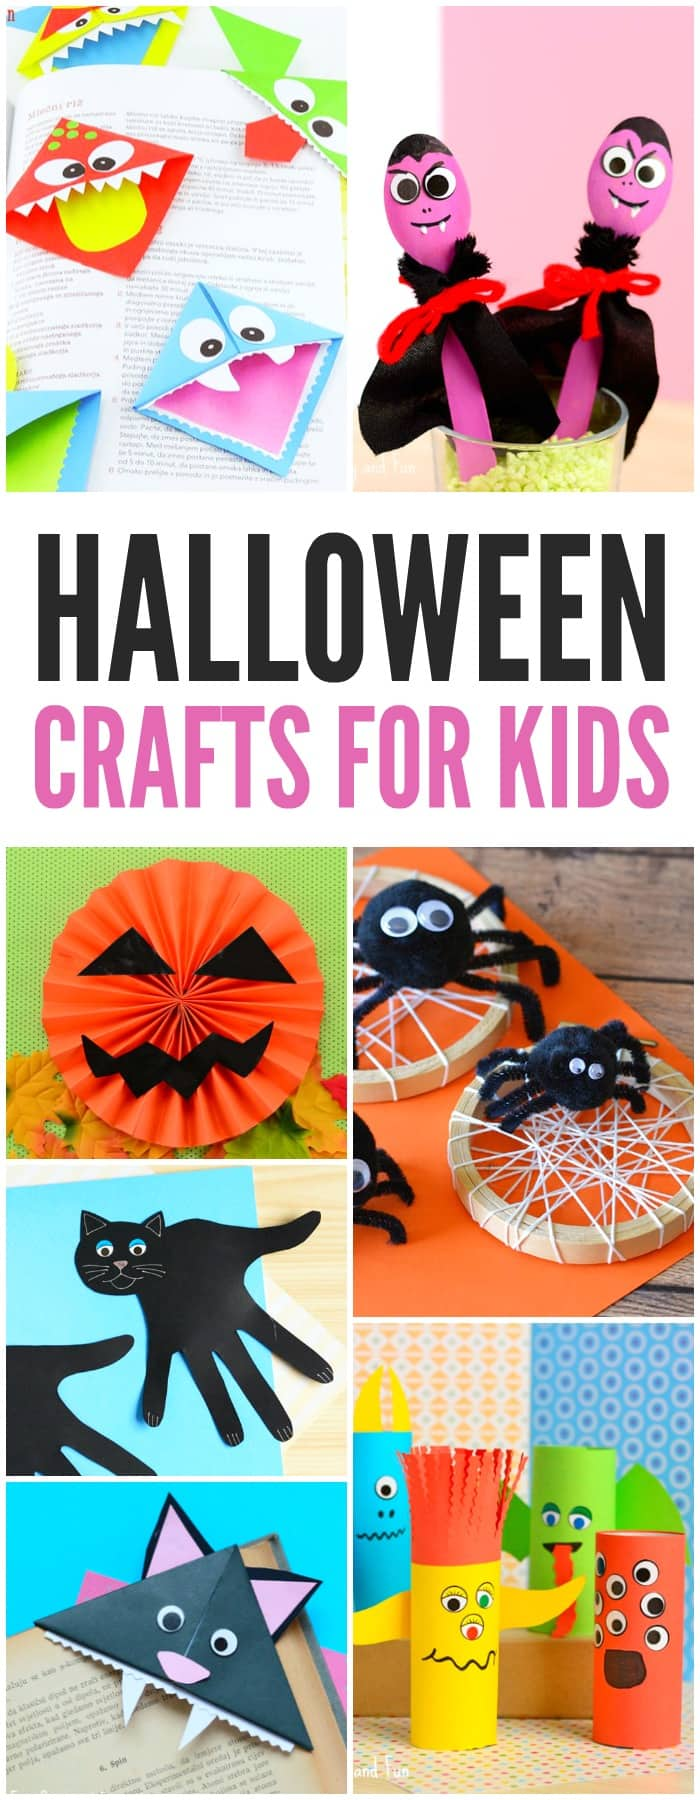 25 Halloween Crafts For Kids Art And Craft Tutorials Ideas